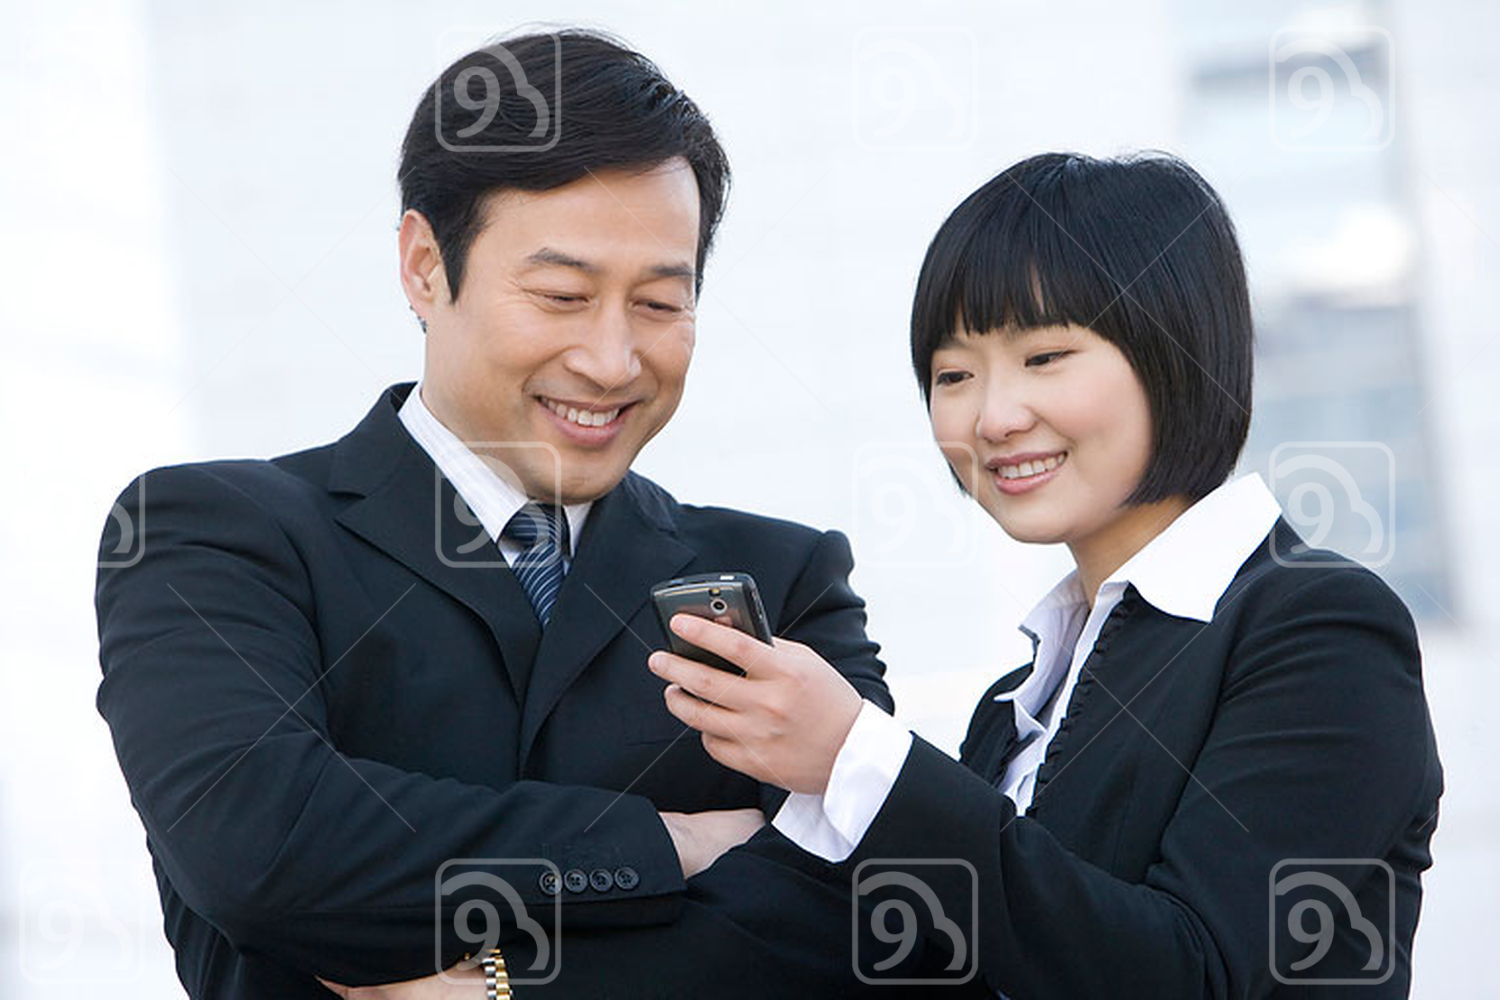 Chinese business people staying connected